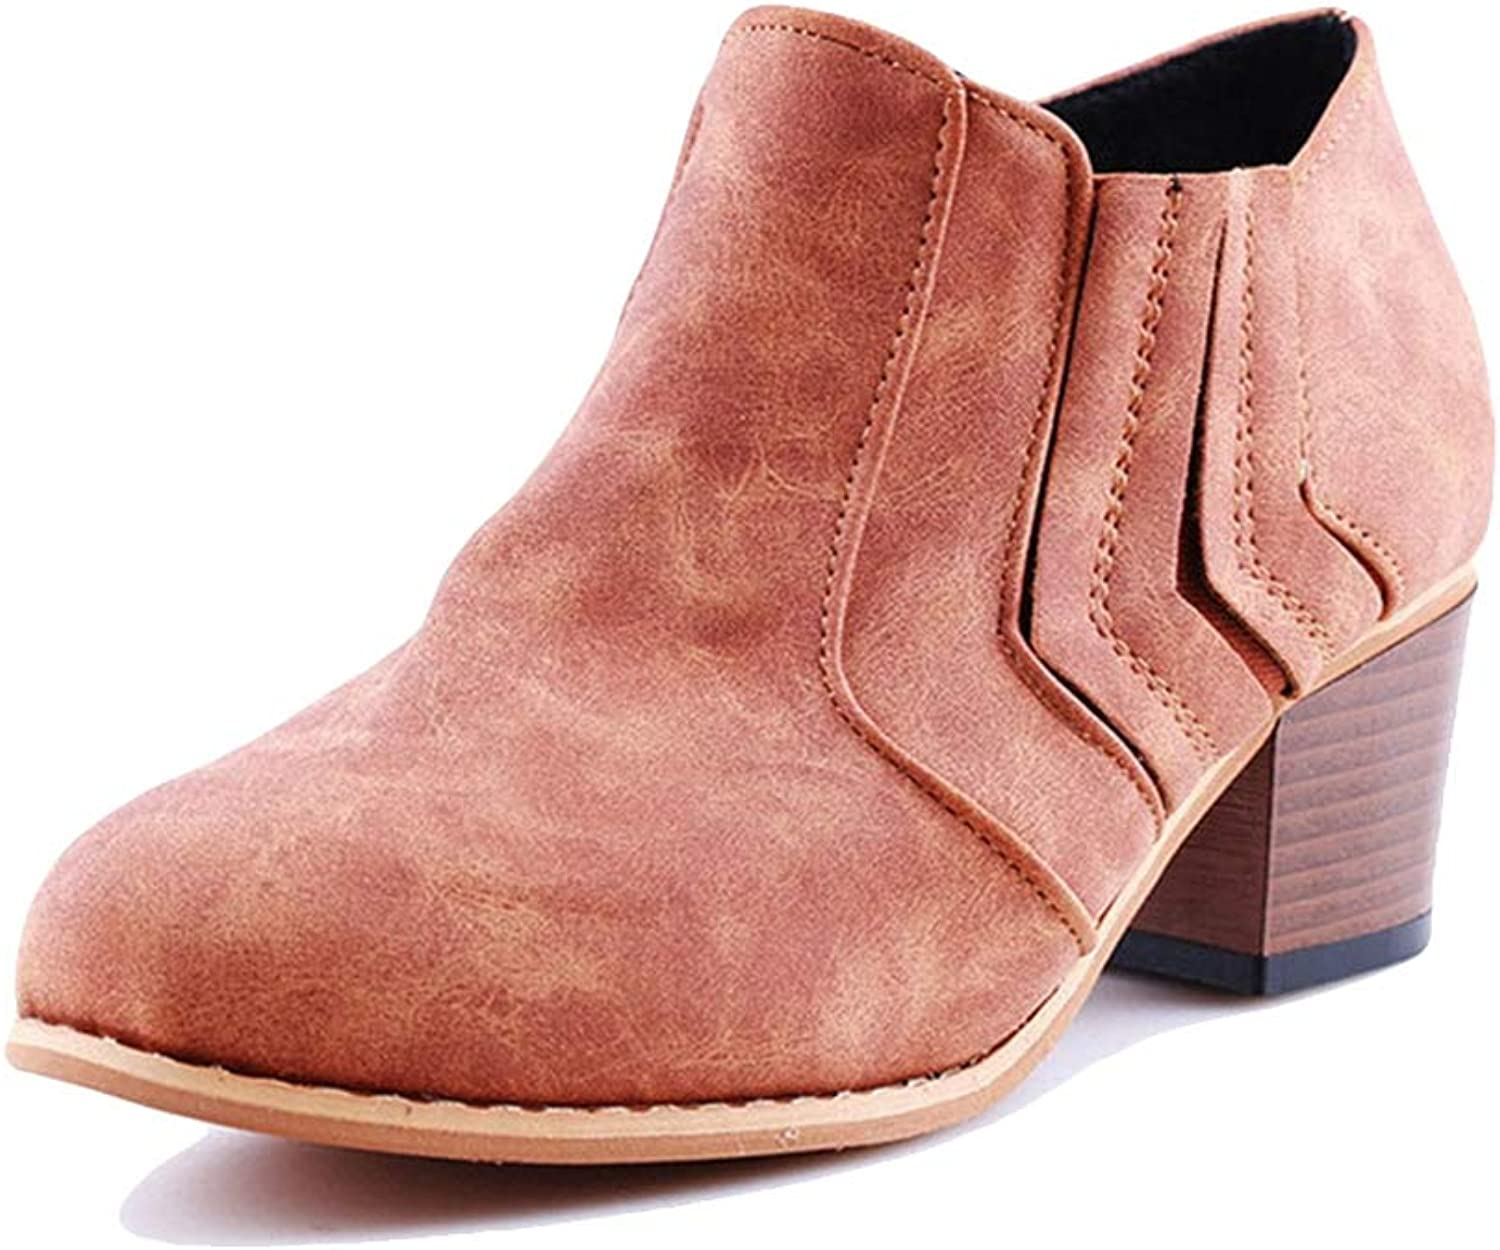 York Zhu Womens Ankle Bootie,Cut Out Slip-on High Thick Heel Riding Boot Women